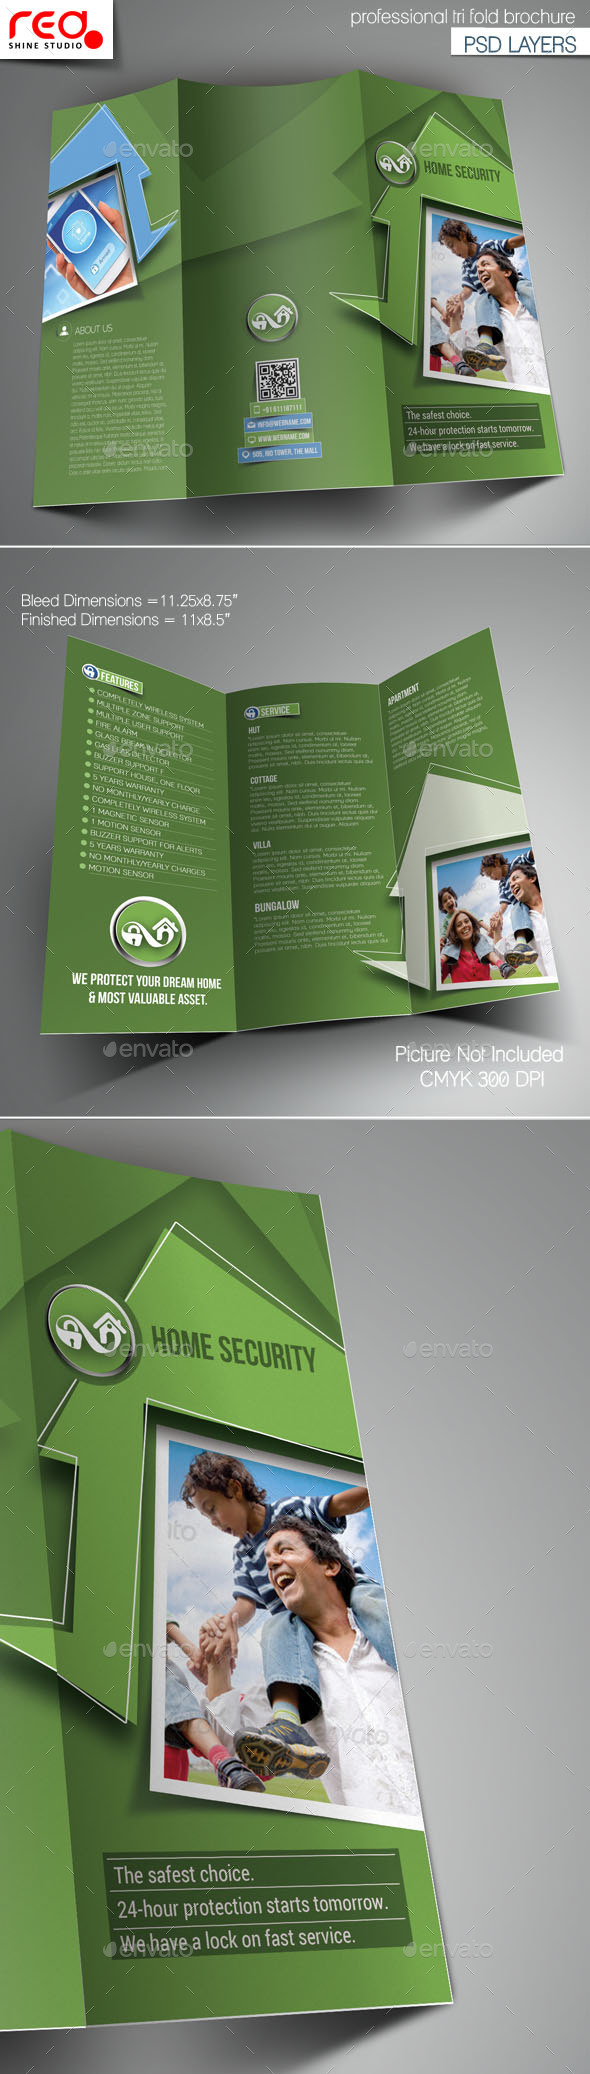 GraphicRiver Home Security Trifold Brochure Template 1 11571361